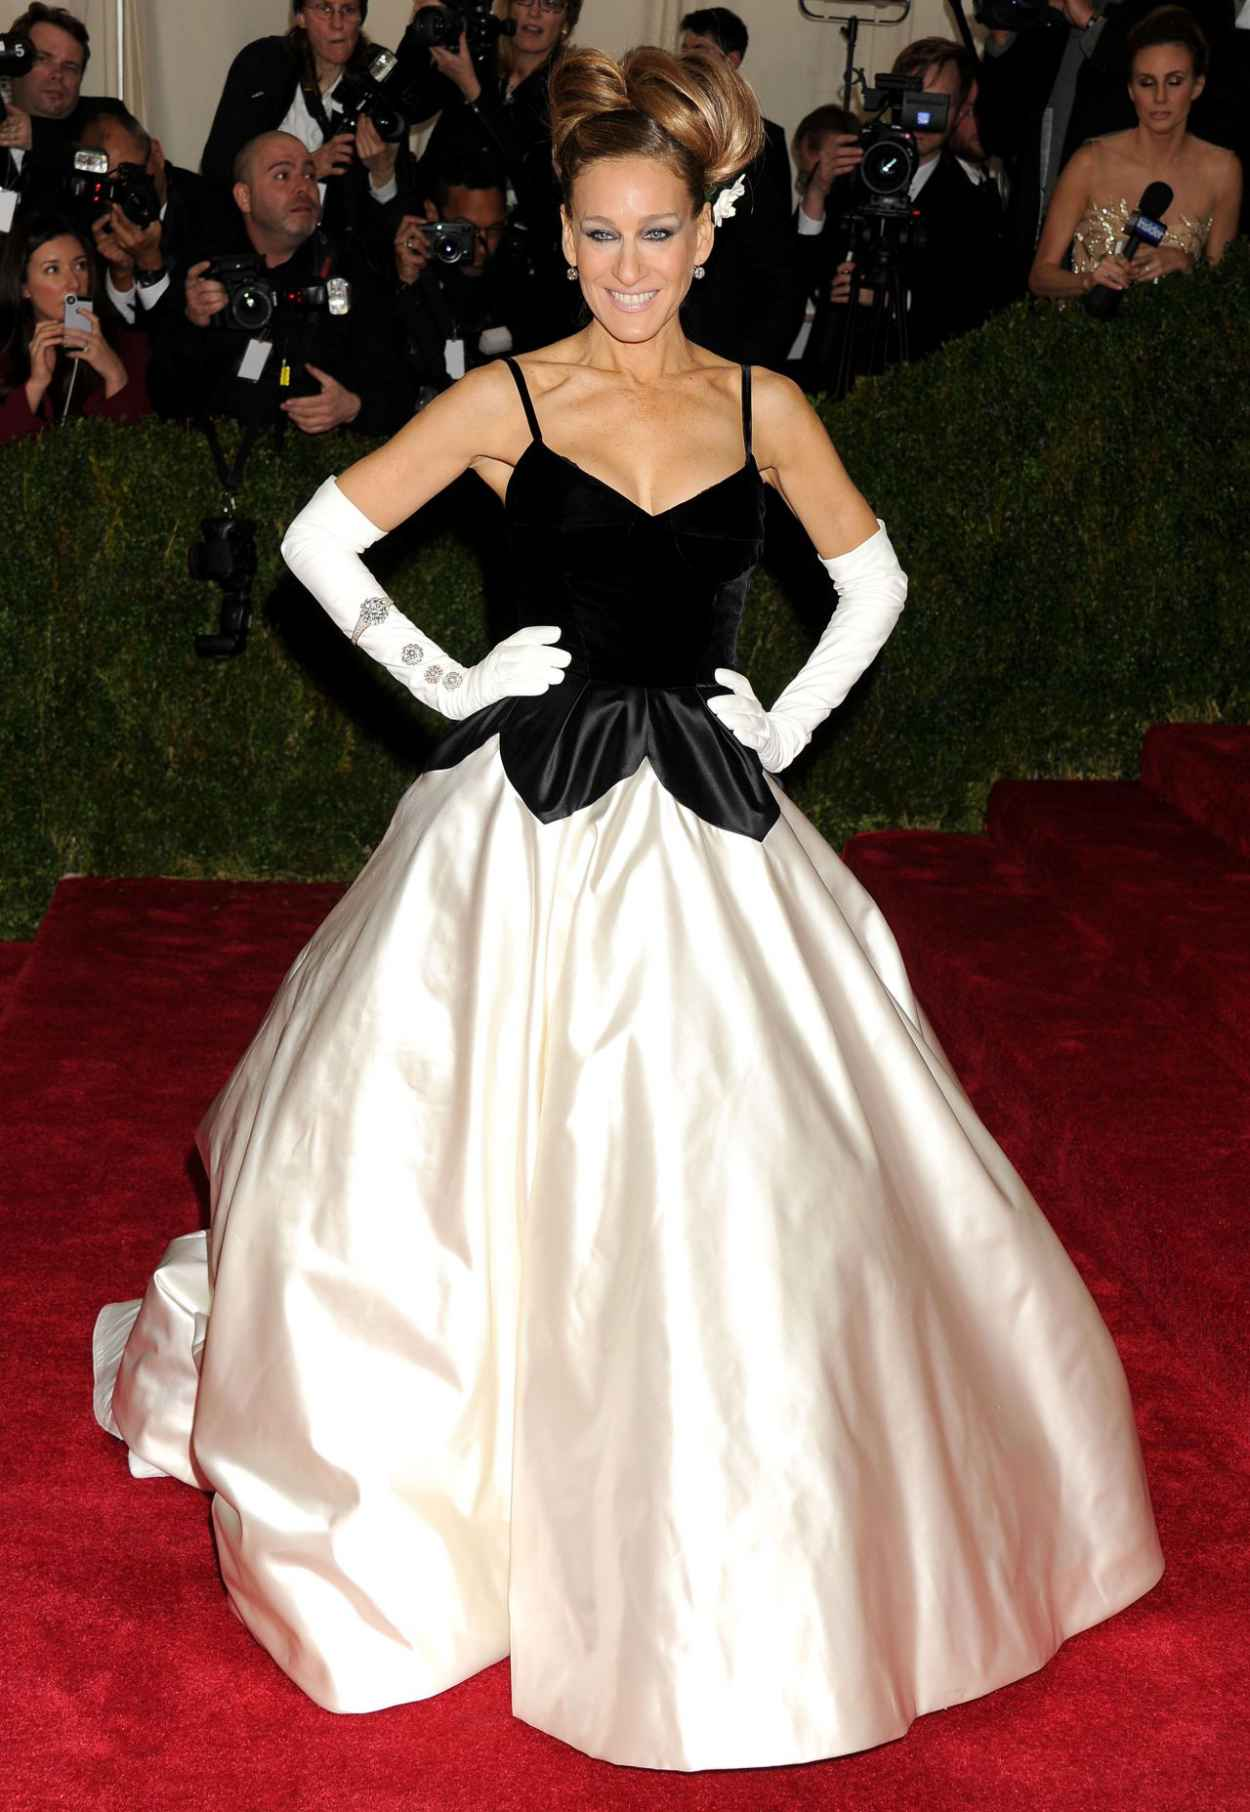 Sarah Jessica Parker in Oscar de la Renta Gown at 2015 Met Costume Institute Gala-1